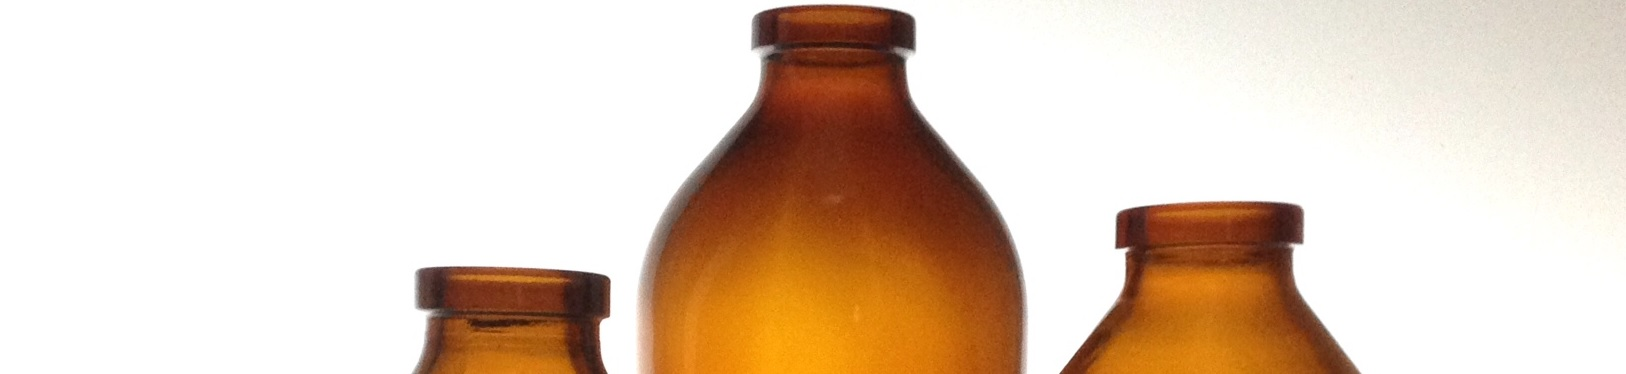 Amber glass infusion bottles